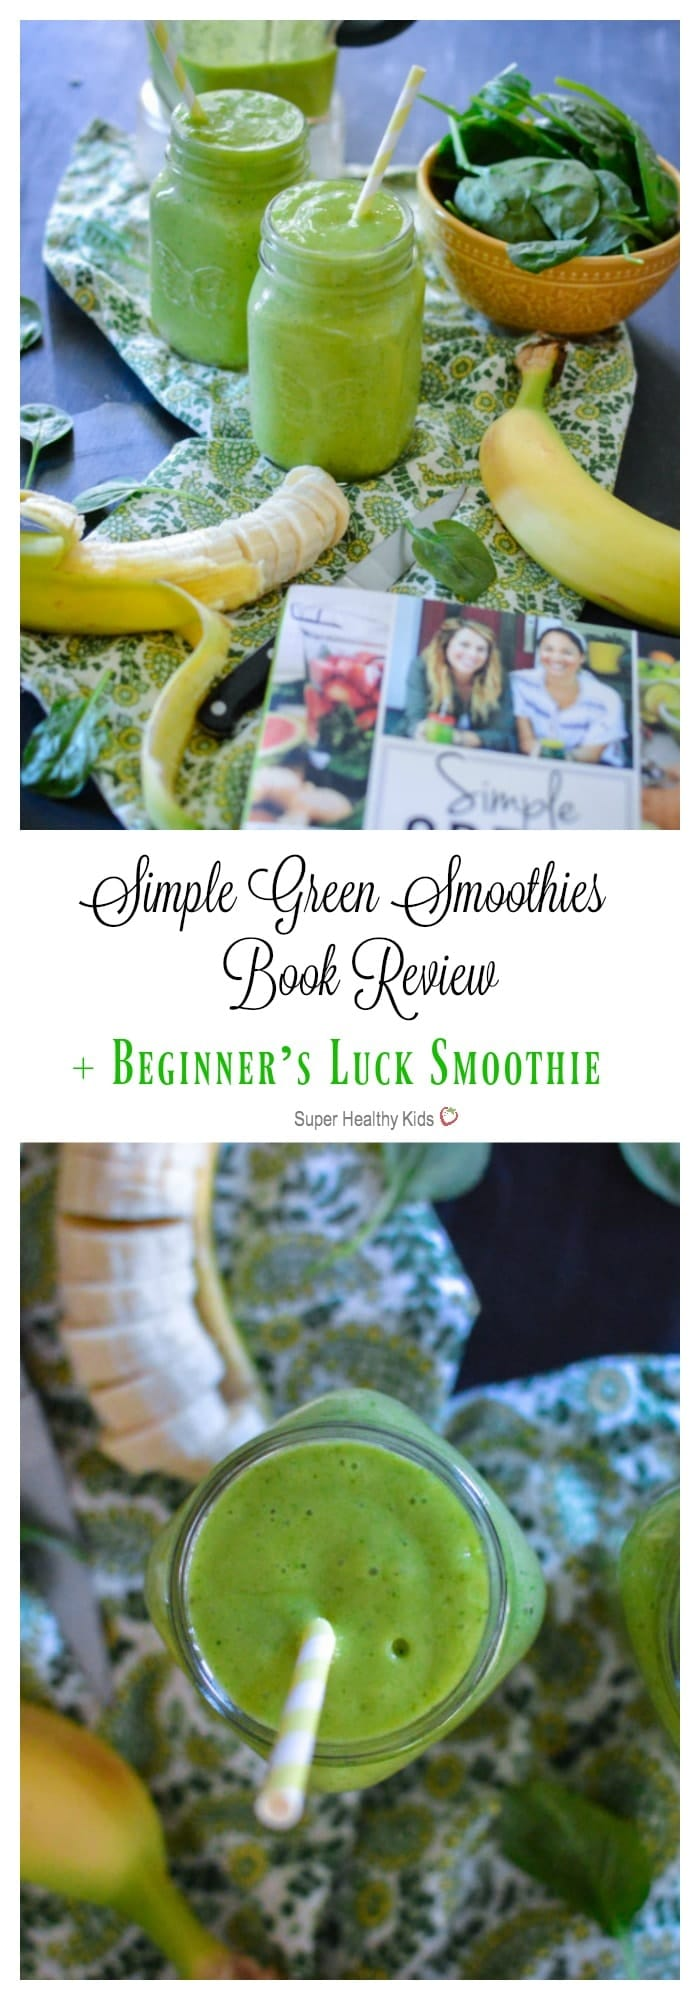 Simple Green Smoothies Book Review + Beginner's Luck Smoothie. If you or your kids have been hesitant to drink green smoothies, this Beginner's Luck Smoothie is the key to your smoothie heart. Sweet, cold, and delicious - it is the ticket to starting your green smoothie habit! https://www.superhealthykids.com/simple-green-smoothies-book-review-beginners-luck-smoothie/